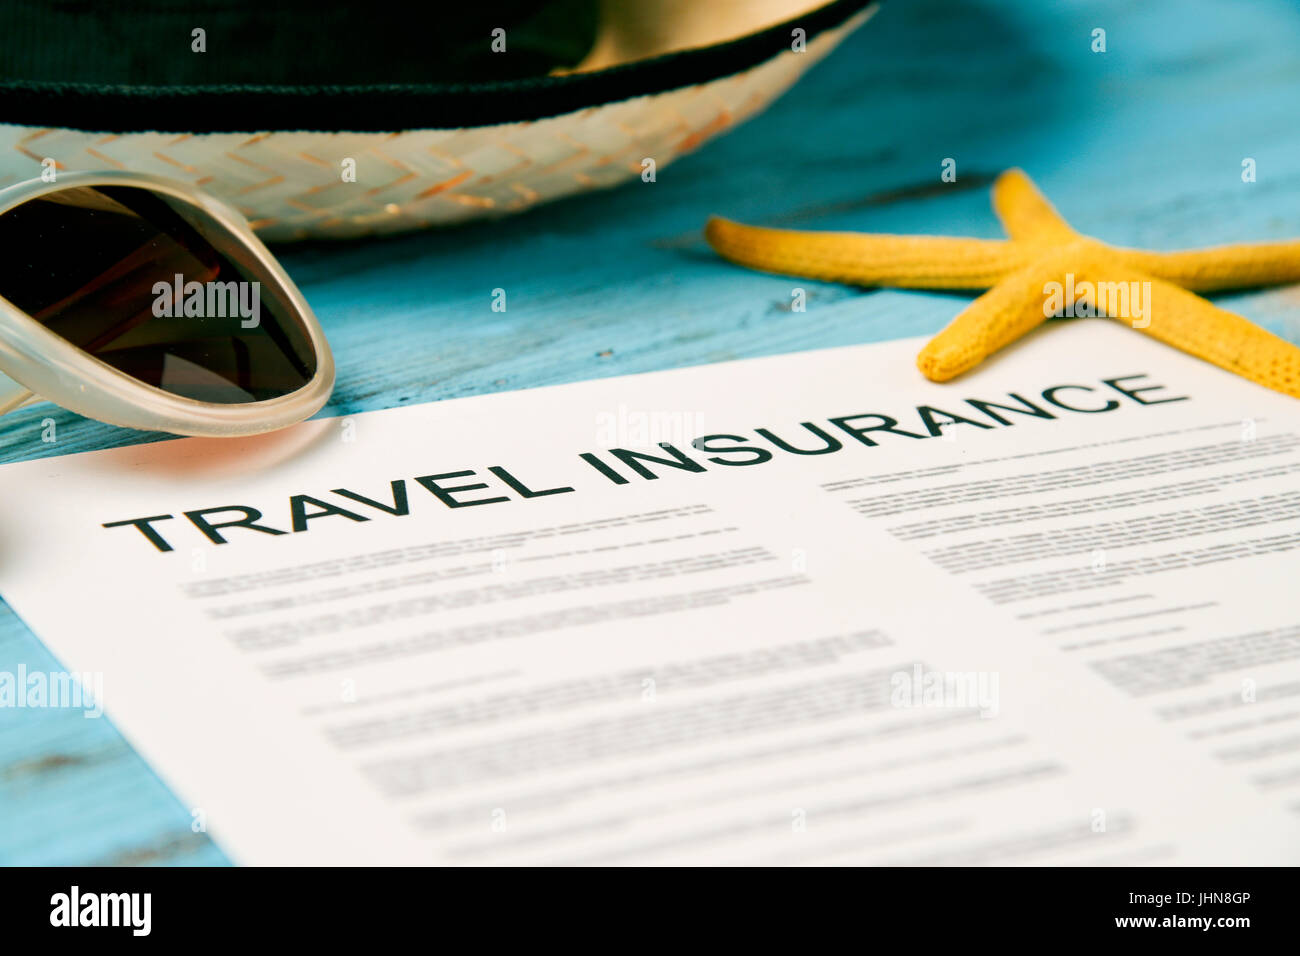 closeup of a travel insurance policy on a rustic blue wooden table, next to a pair of sunglasses, a straw hat and - Stock Image